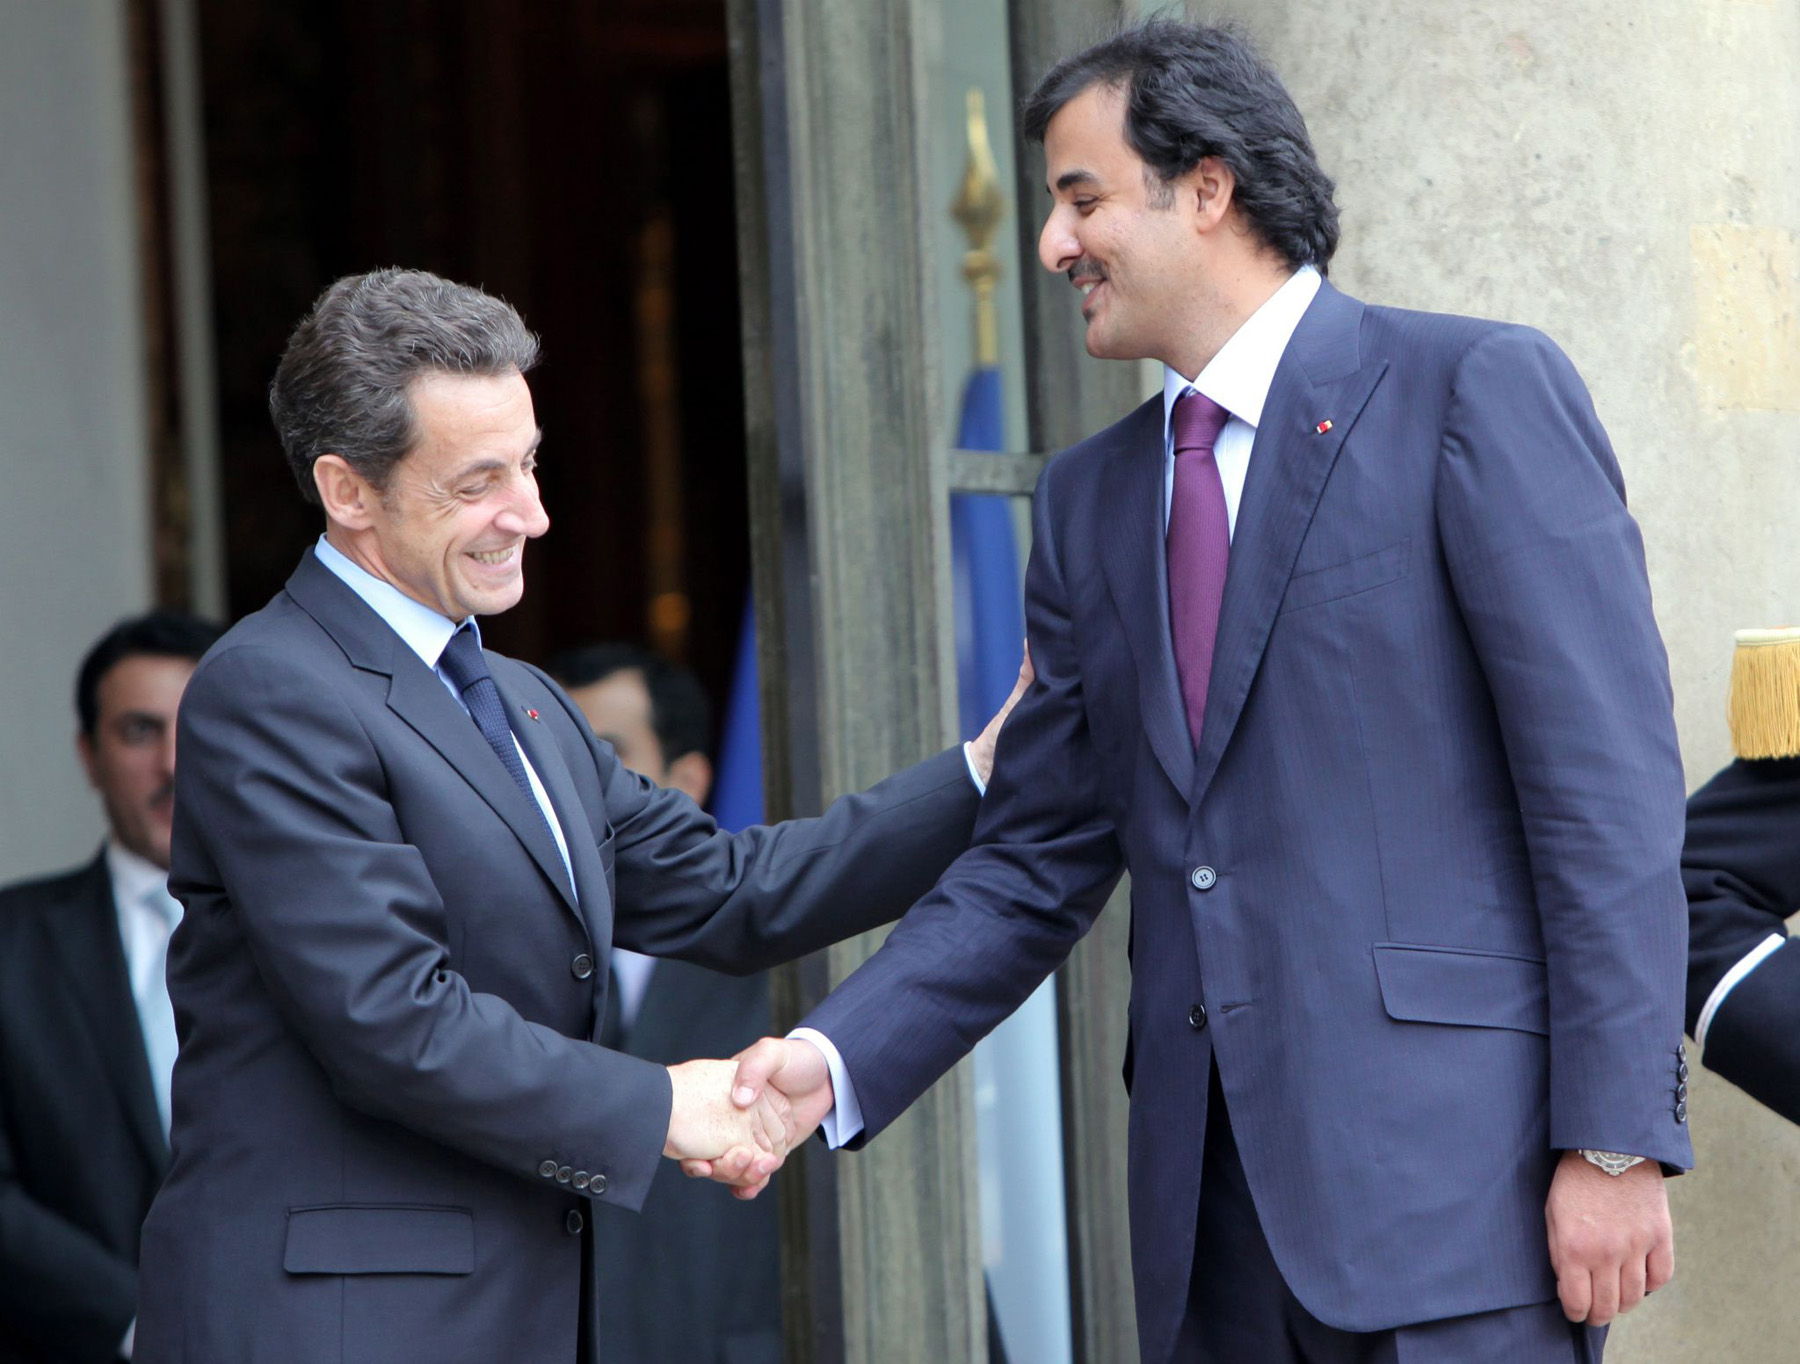 A trip down memory lane. A 2010 file picture shows then French President Nicolas Sarkozy (L) and Qatar's Sheikh Tamim bin Hamad al-Thani at the Elysee Palace in Paris. 	  	         	     (AFP)